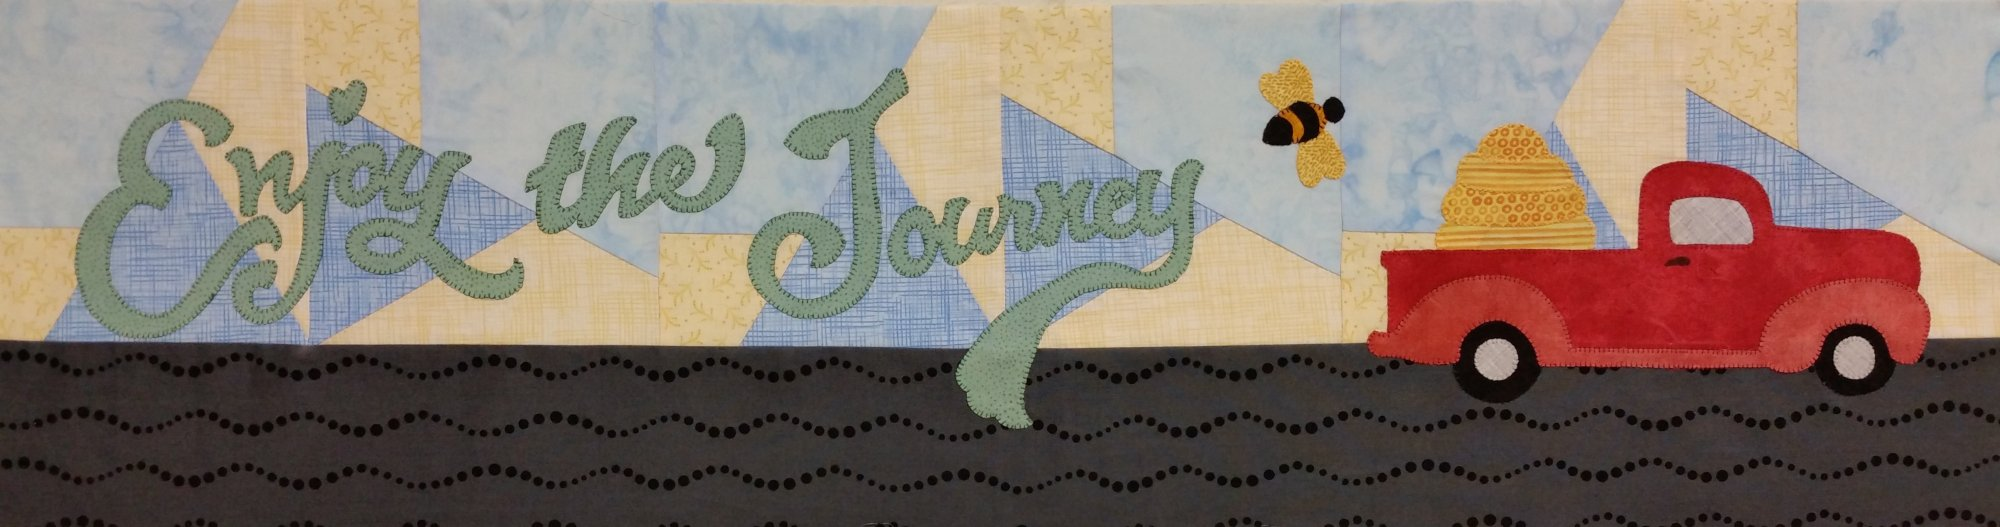 SWD 2017 Row by Row Enjoy the Journey Quilt Pattern